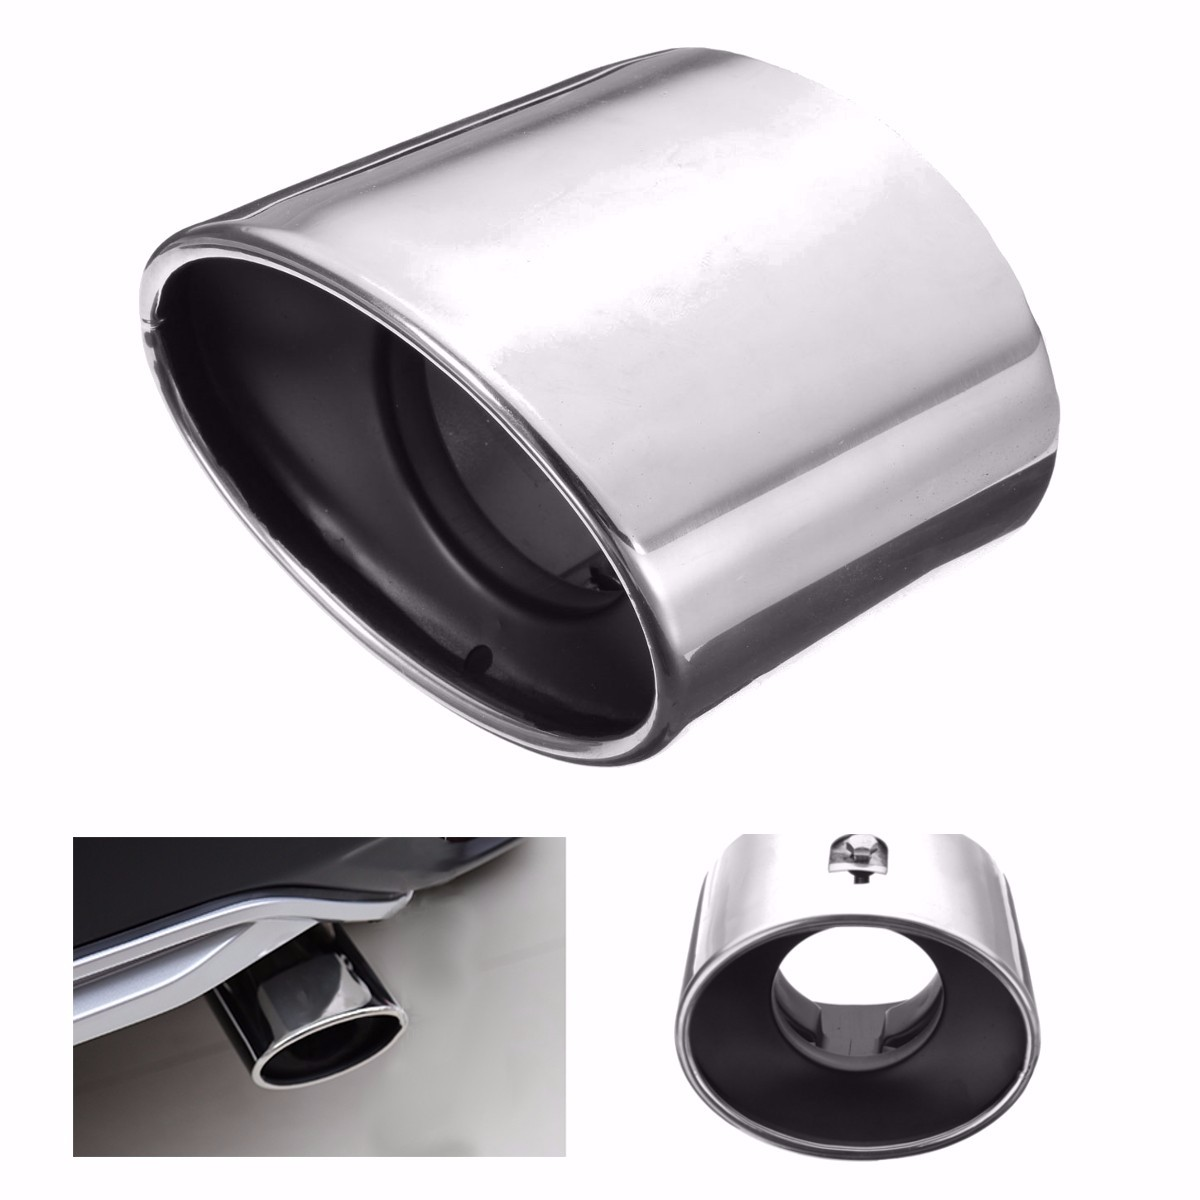 Chrome Stainless Steel Exhaust Tip Tail Pipe Muffler For Honda /Accord 2008-2012